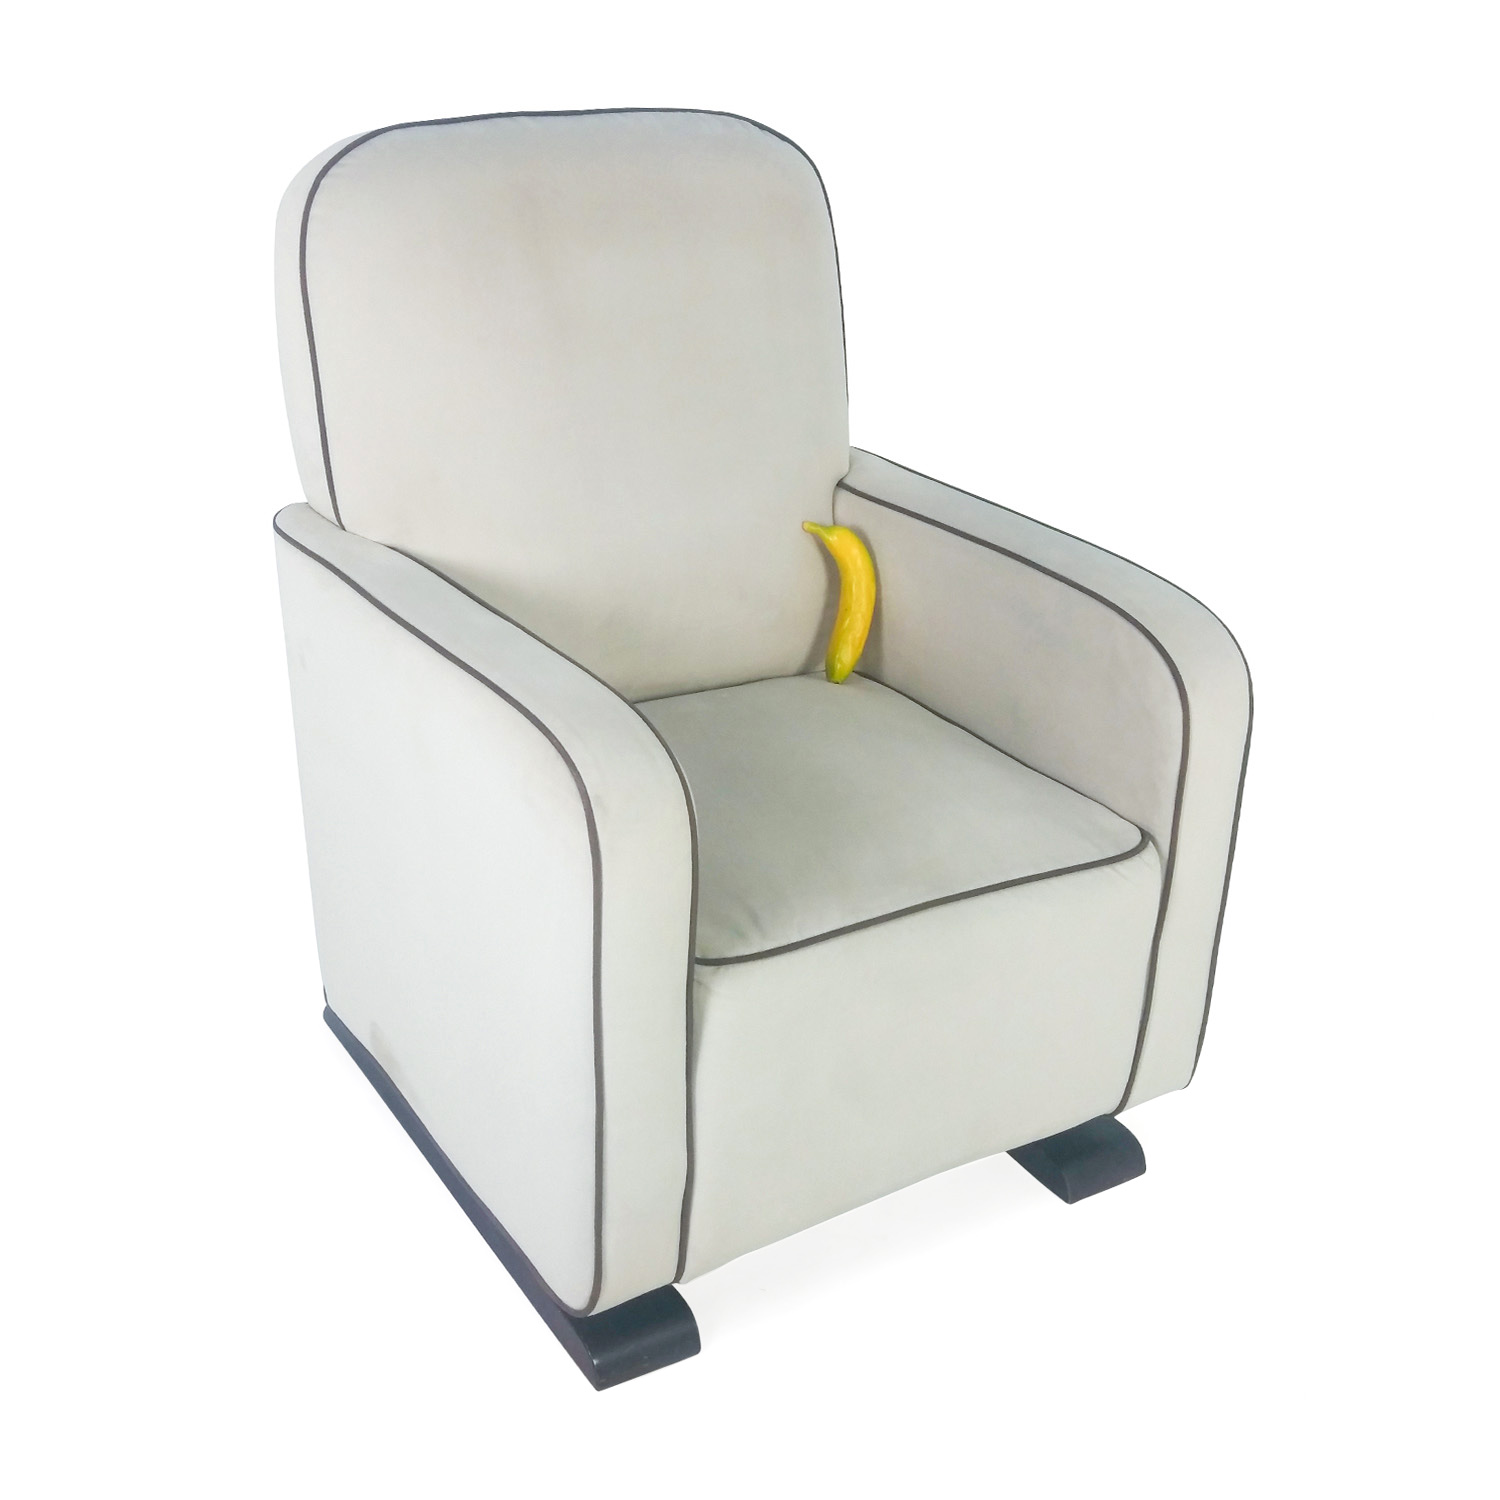 Off modern white rocking chair chairs